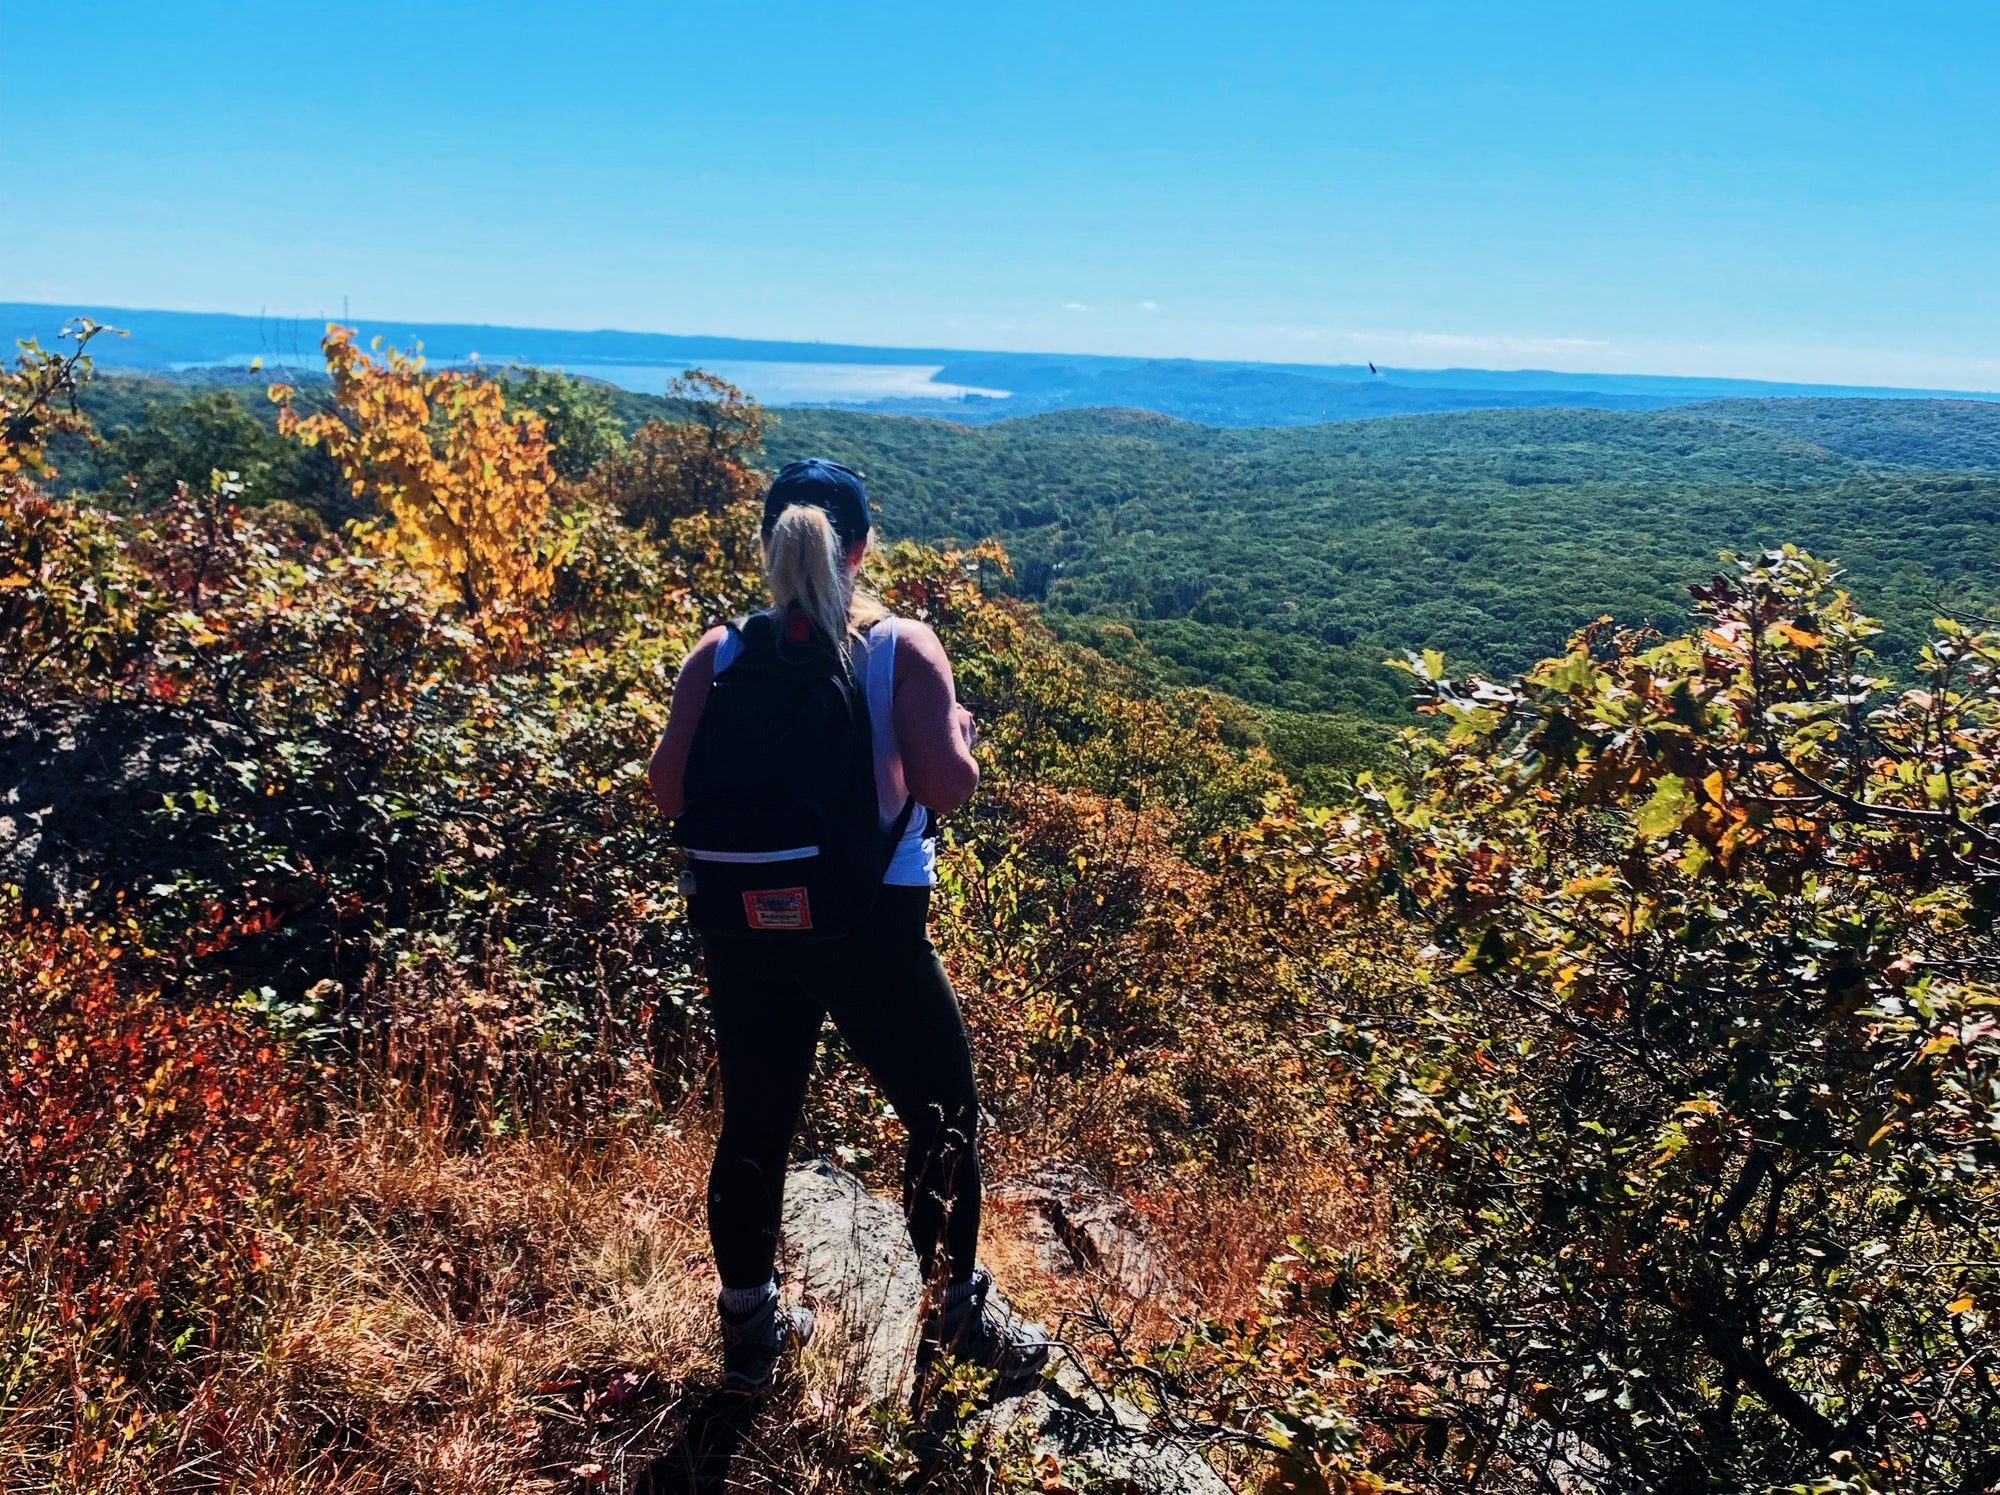 Top 10 New York Hikes According to Annie